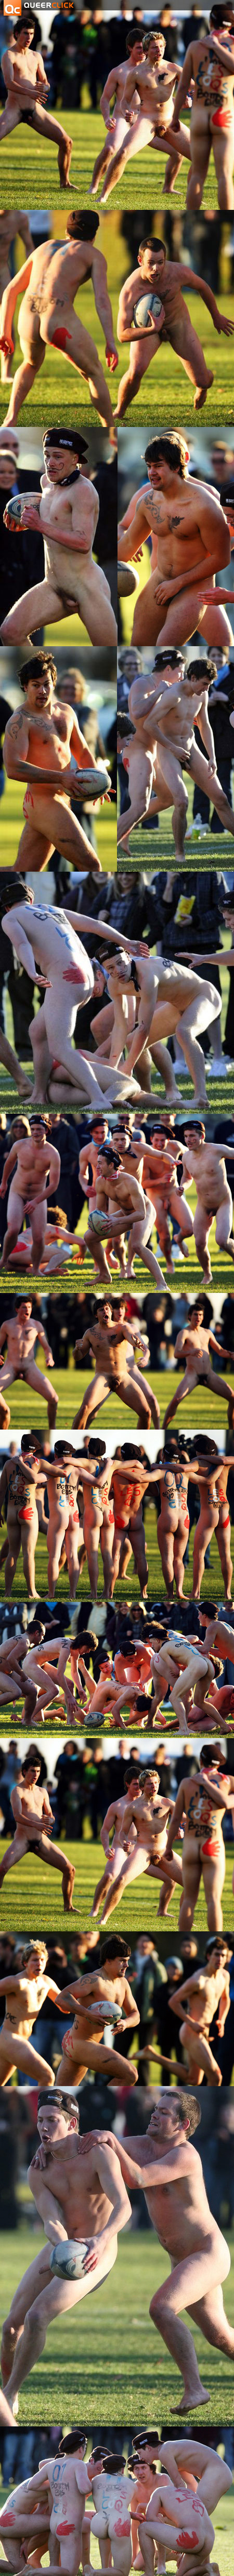 French Naked Rugby